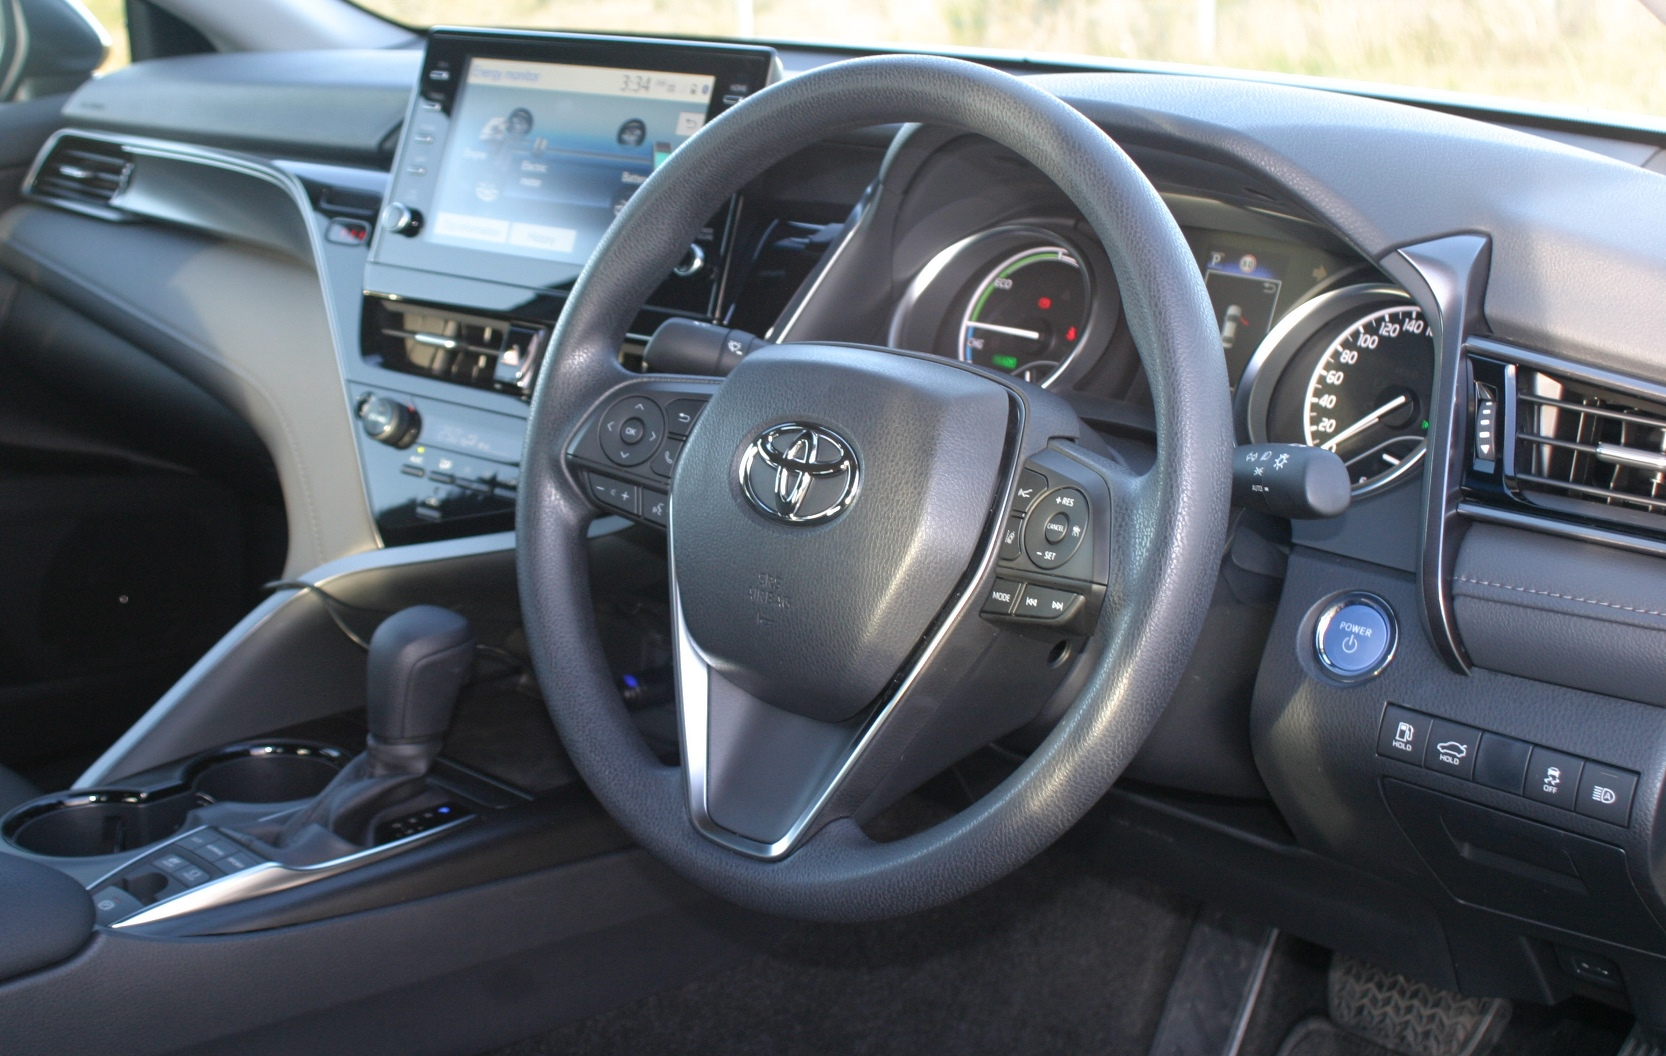 Toyota Camry Ascent Hybrid Steering Wheel